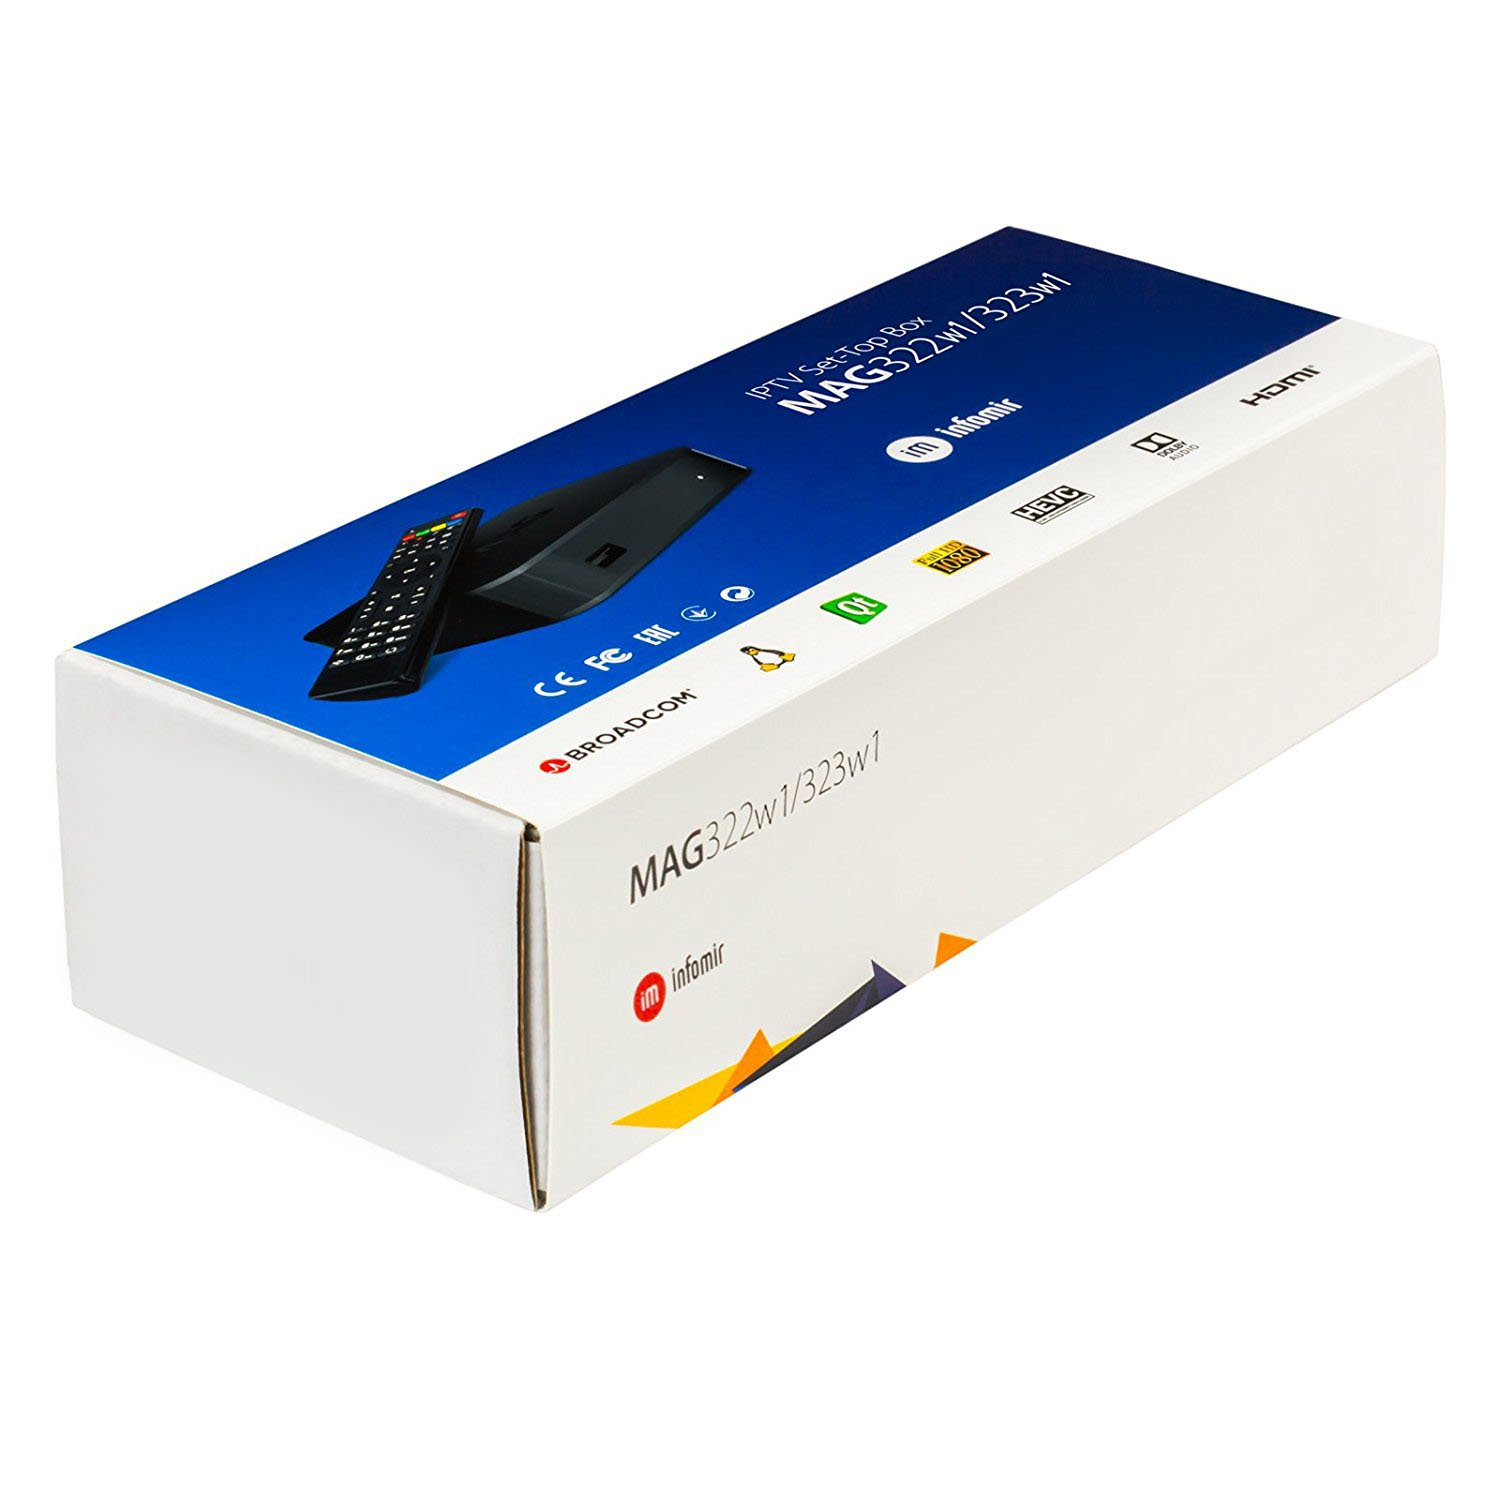 MAG 322 W1 IPTV BOX + IN BUILT WIFI + HDMI CABLE + REMOTE + POWER ADAPTER by MAG322-W1 (Image #3)